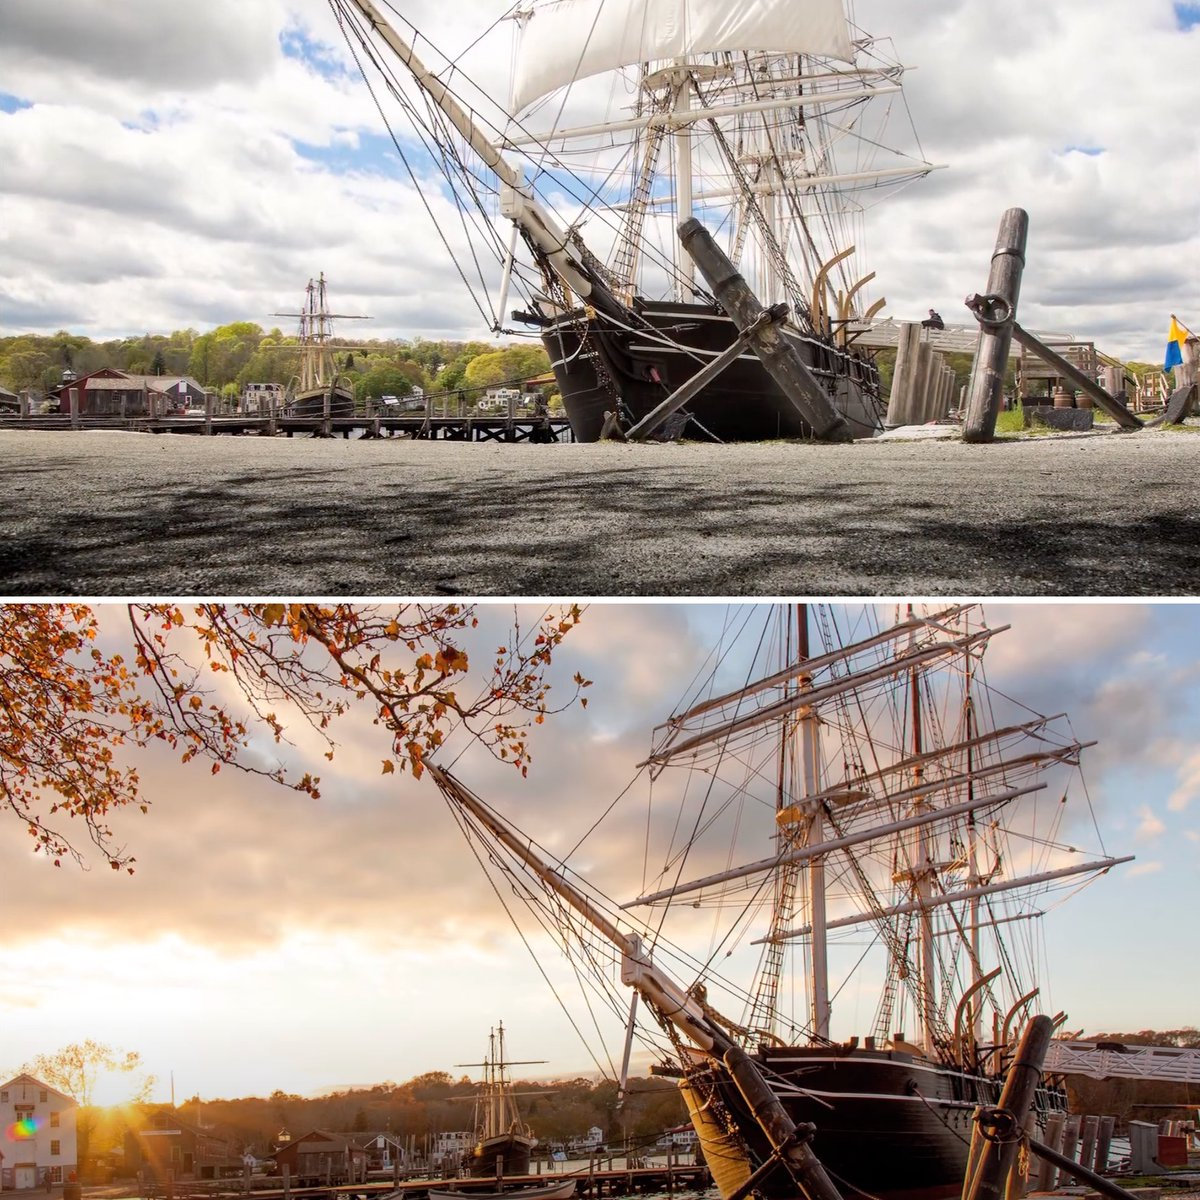 As the sun sets, the longer, softer shadows can create greater depth in your photos. Watch this video with staff photographer, Joe Michael, and see how your photo can change minute by minute! https://t.co/9V0UcIdRjU #mysticseaportmusem #phototips #photographyweek https://t.co/Ne48G8OwDT